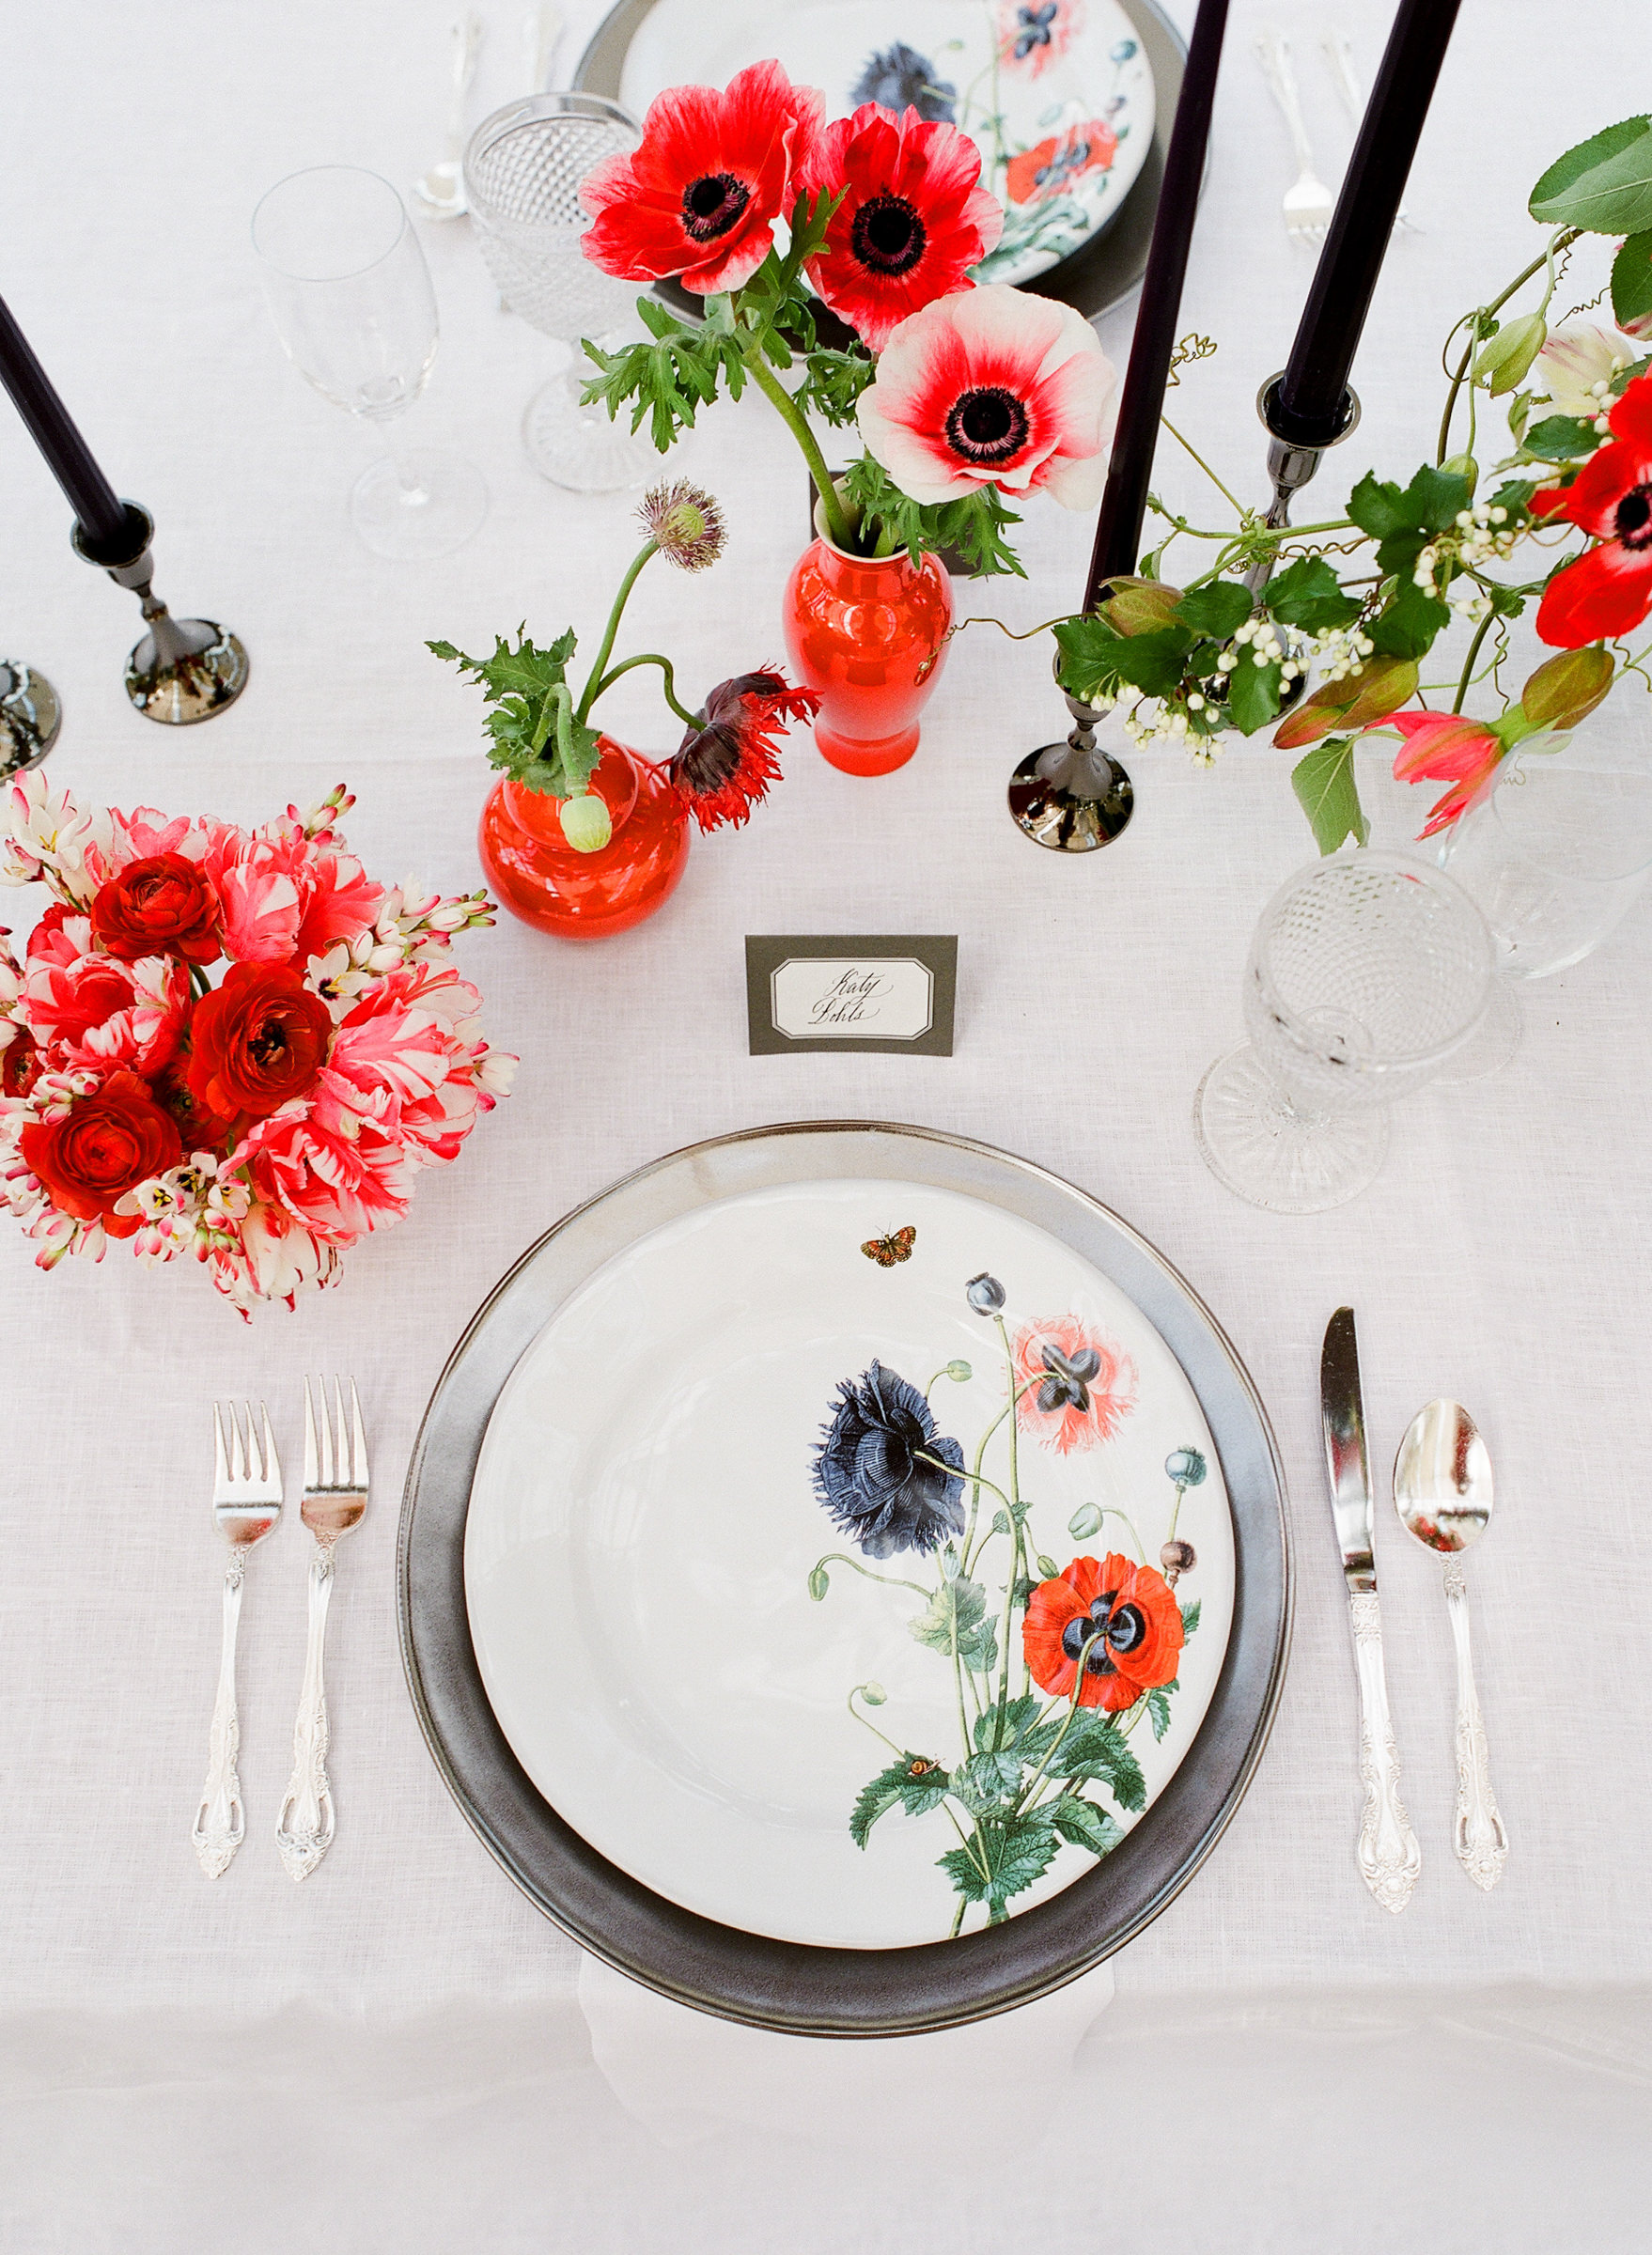 Brigh floral plates and red floral centerpieces - photo by Corbin Gurkin